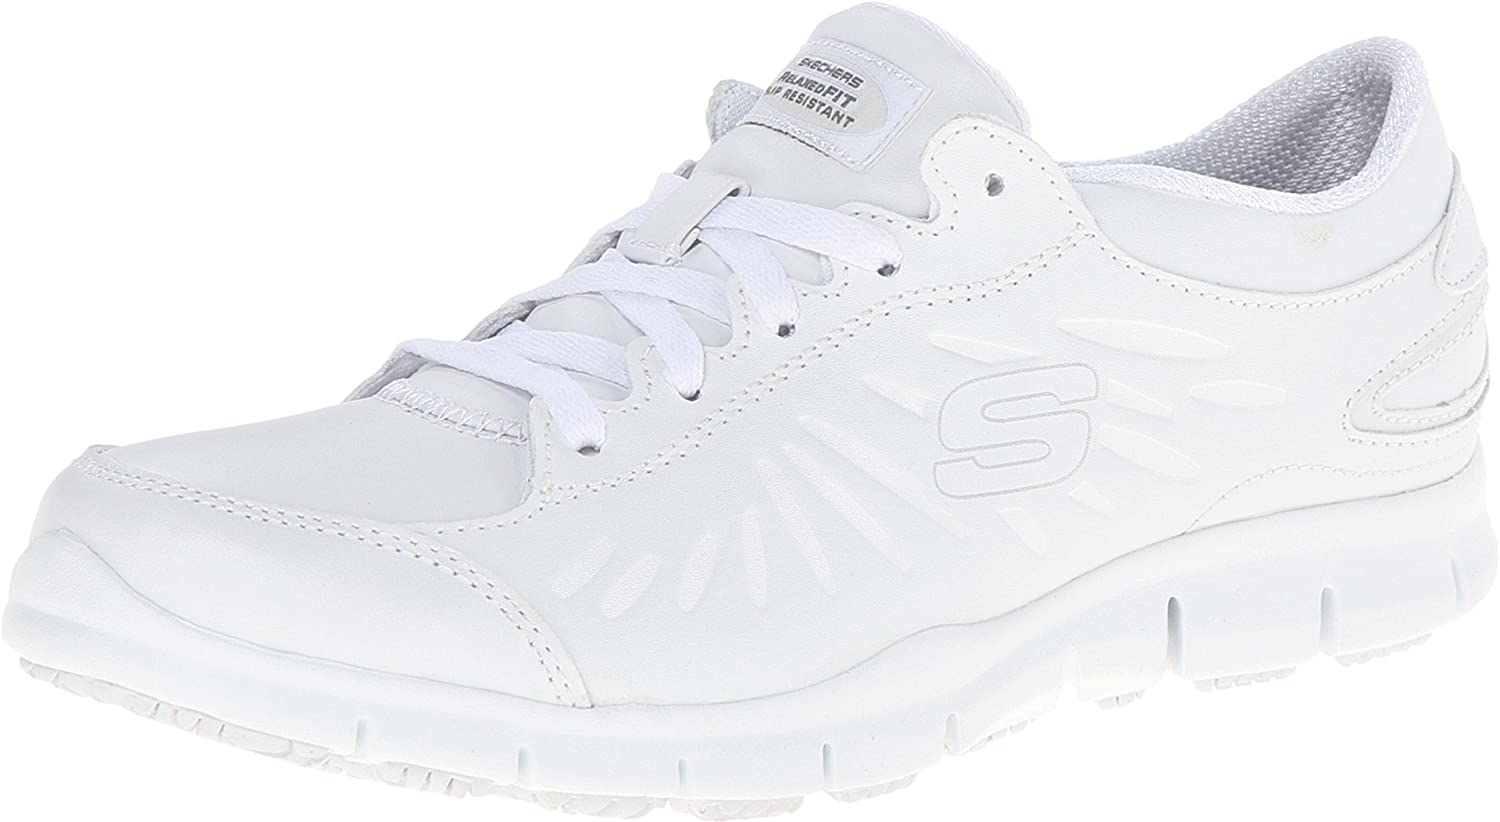 Skechers for Work Womens Eldred Dewy Health Care & Food Service Shoe, White, 11 M US